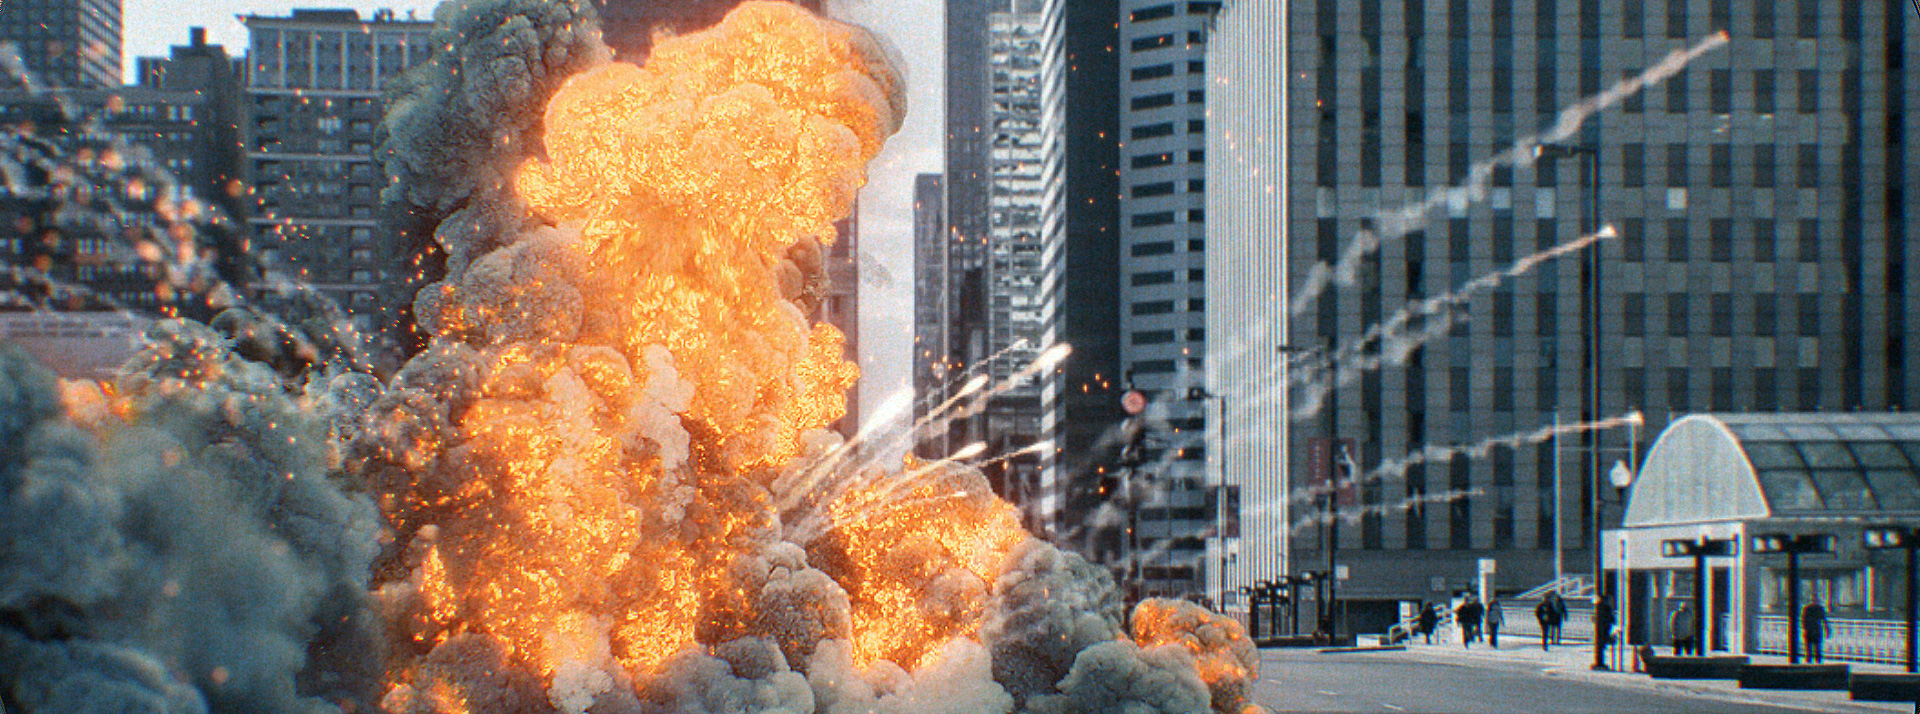 Download 4K Explosion VFX